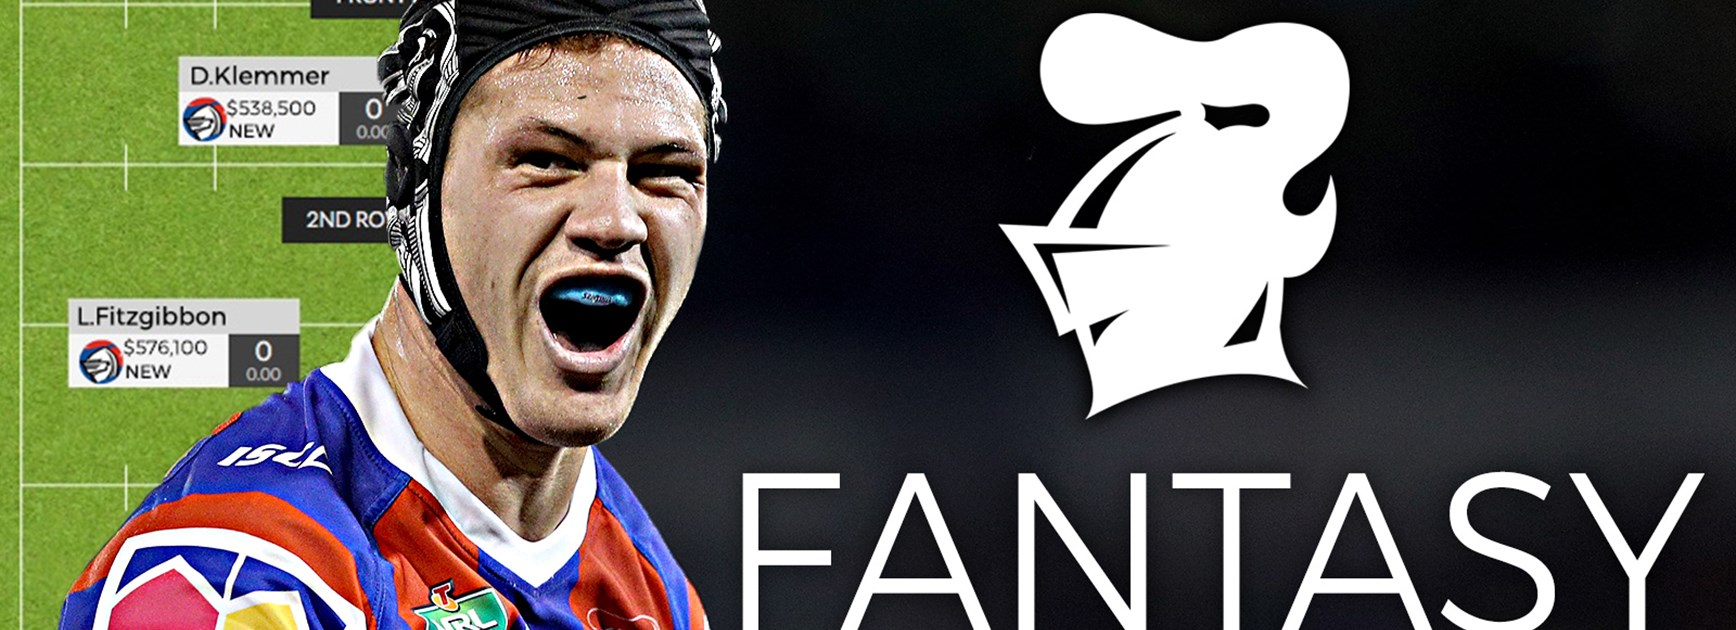 Knights Fantasy: Round 19 studs and duds